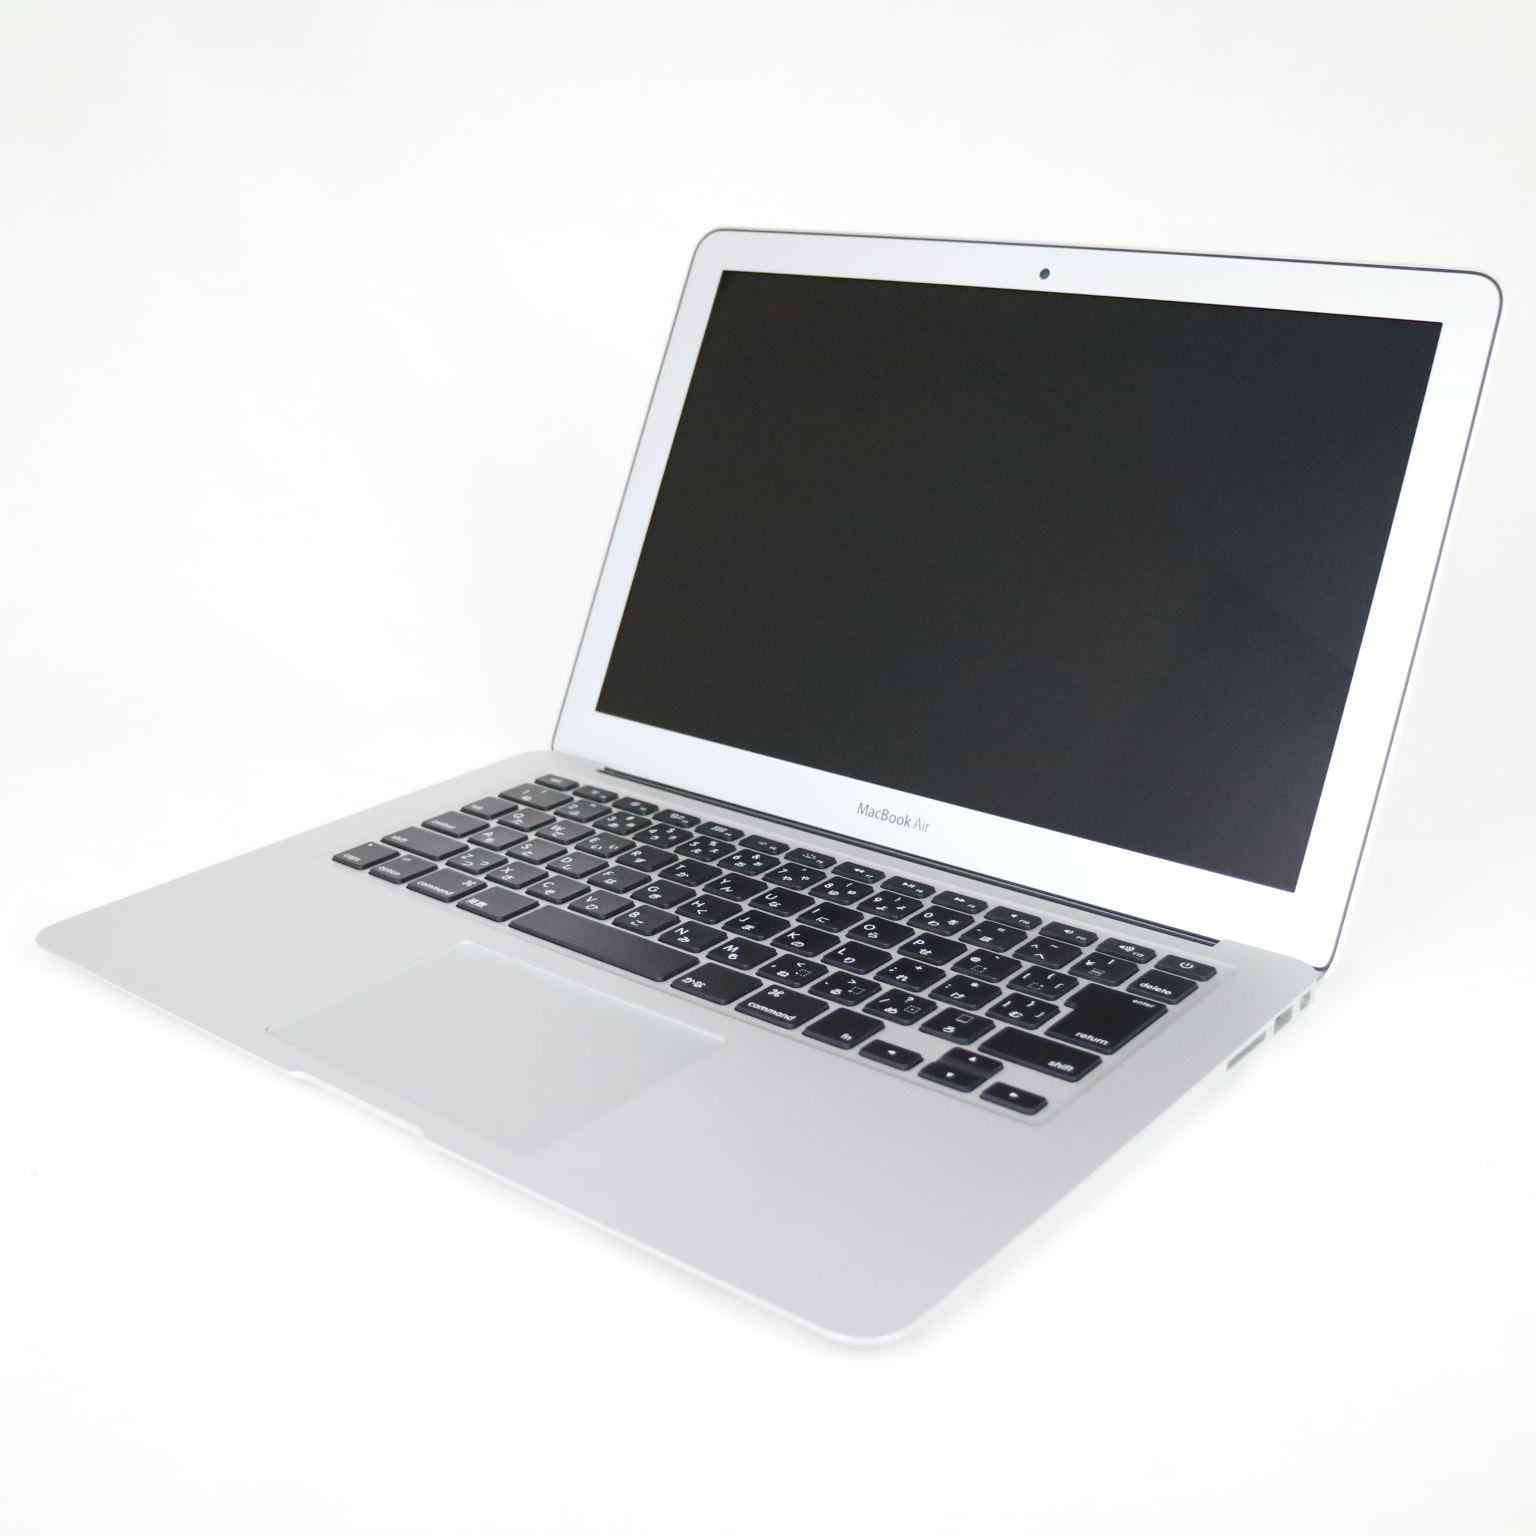 MacBook Air MMGG2J/A (13.3in/ i5/ 1.6GHz/ 8GB/ SSD256GB)